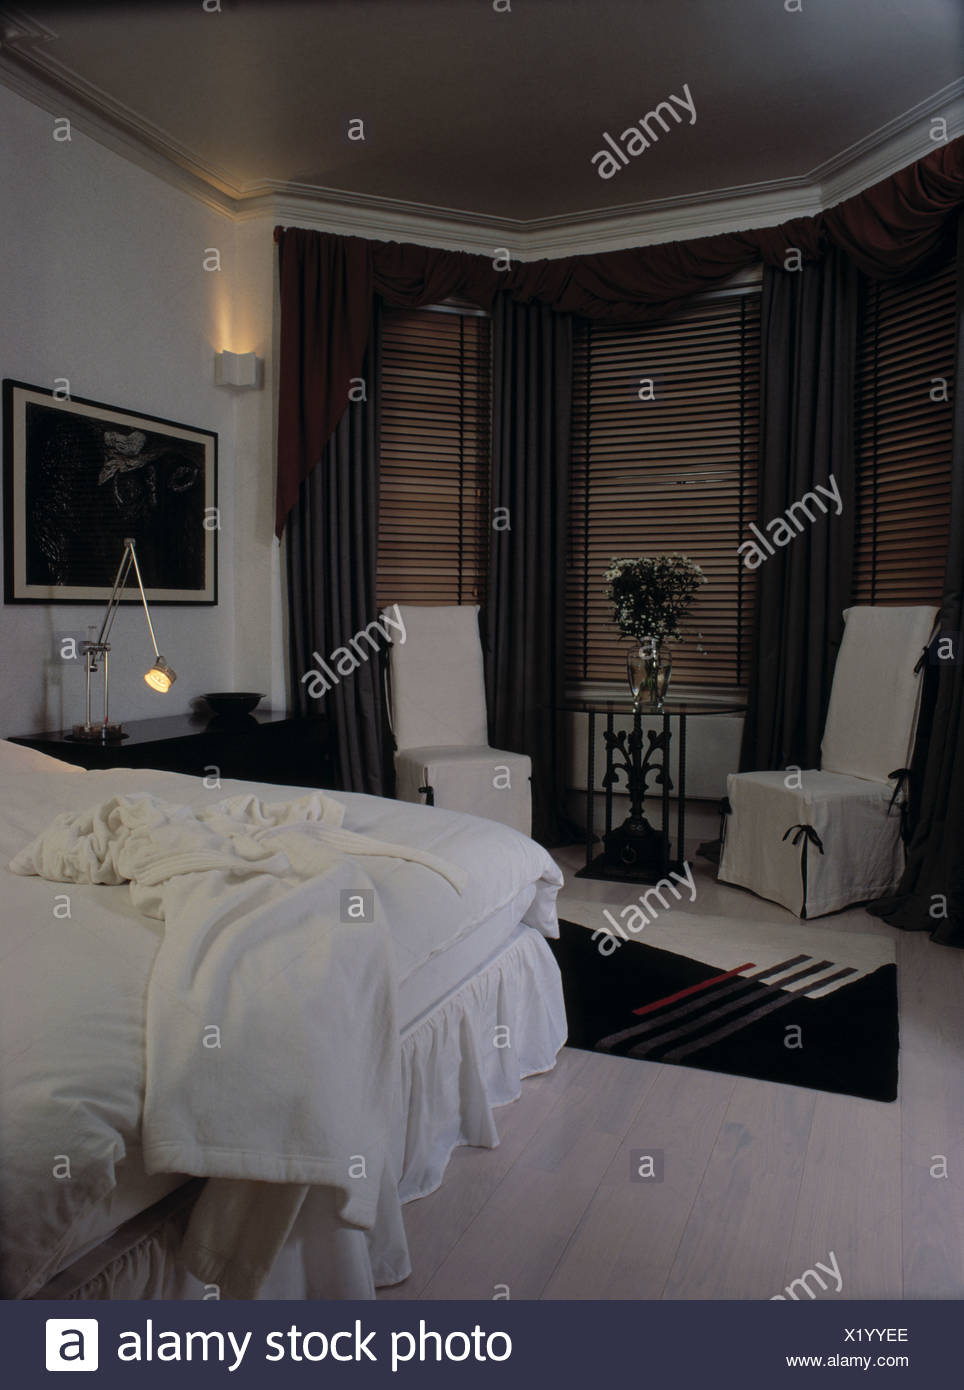 White loosecovers on chairs in front of bay window with ...